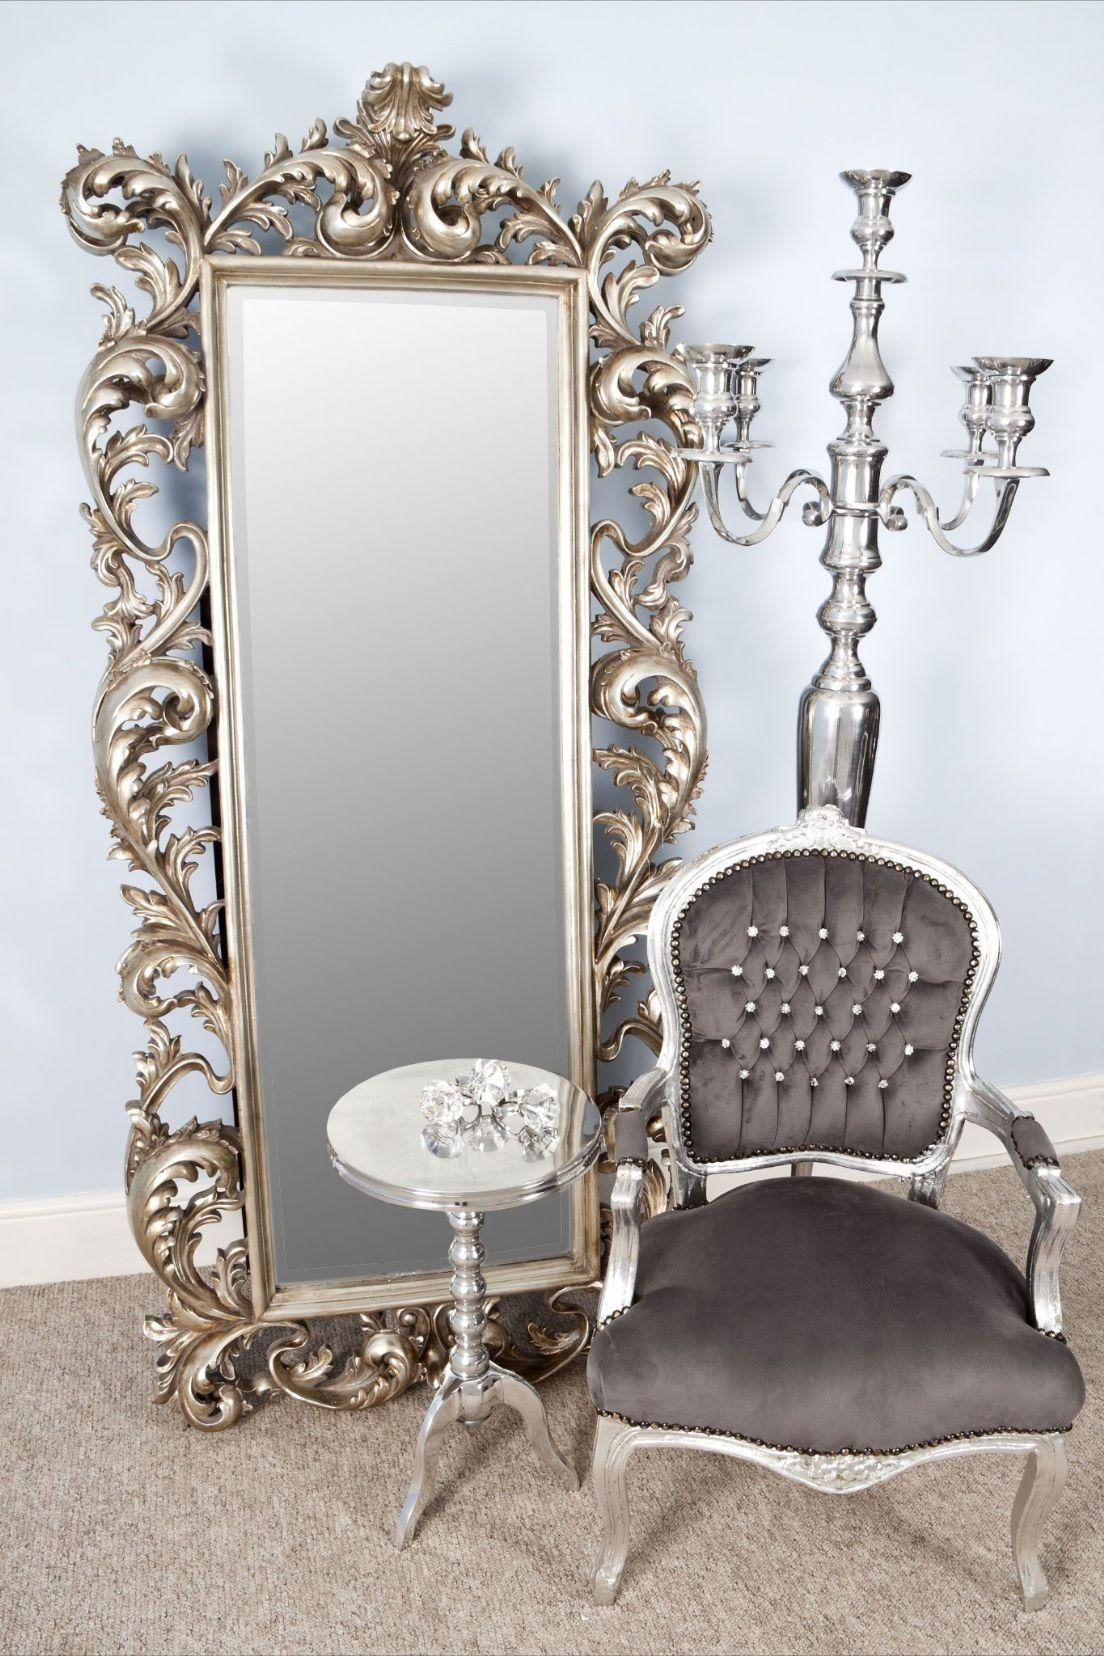 Ornate Mirrors For Sale 118 Awesome Exterior With Large Gold Very In Antique Mirrors For Sale Vintage Mirrors (Image 14 of 20)